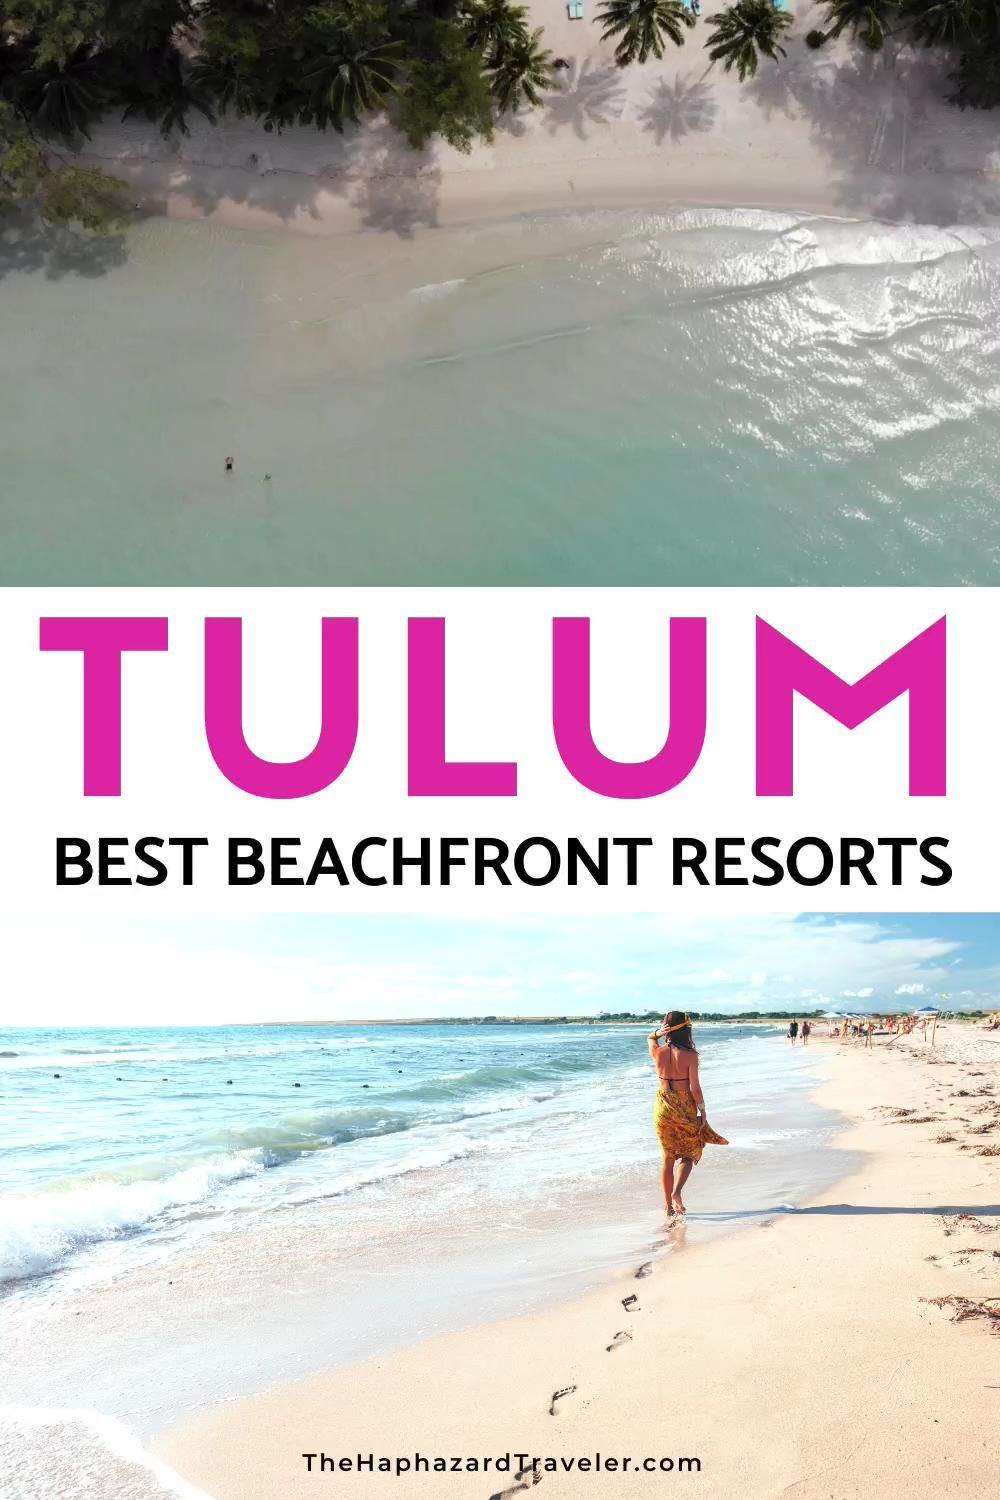 Tulum, Mexico hotels on the beach let you step right from your room into sugary-soft white sand! Pick from the best Tulum, Mexico resorts & get hotel tips for every budget. From eco-chic glamping to Tulum Mexico boutique hotels, luxury resorts & Airbnb Tulum villas for a group, these are the best hotels in Tulum, Mexico. Where to stay in Tulum Mexico | Where to stay in Tulum Mexico hotels | Where to stay in Tulum Mexico beaches | Where to stay in Tulum Mexico travel guide | Tulum Mexico beach